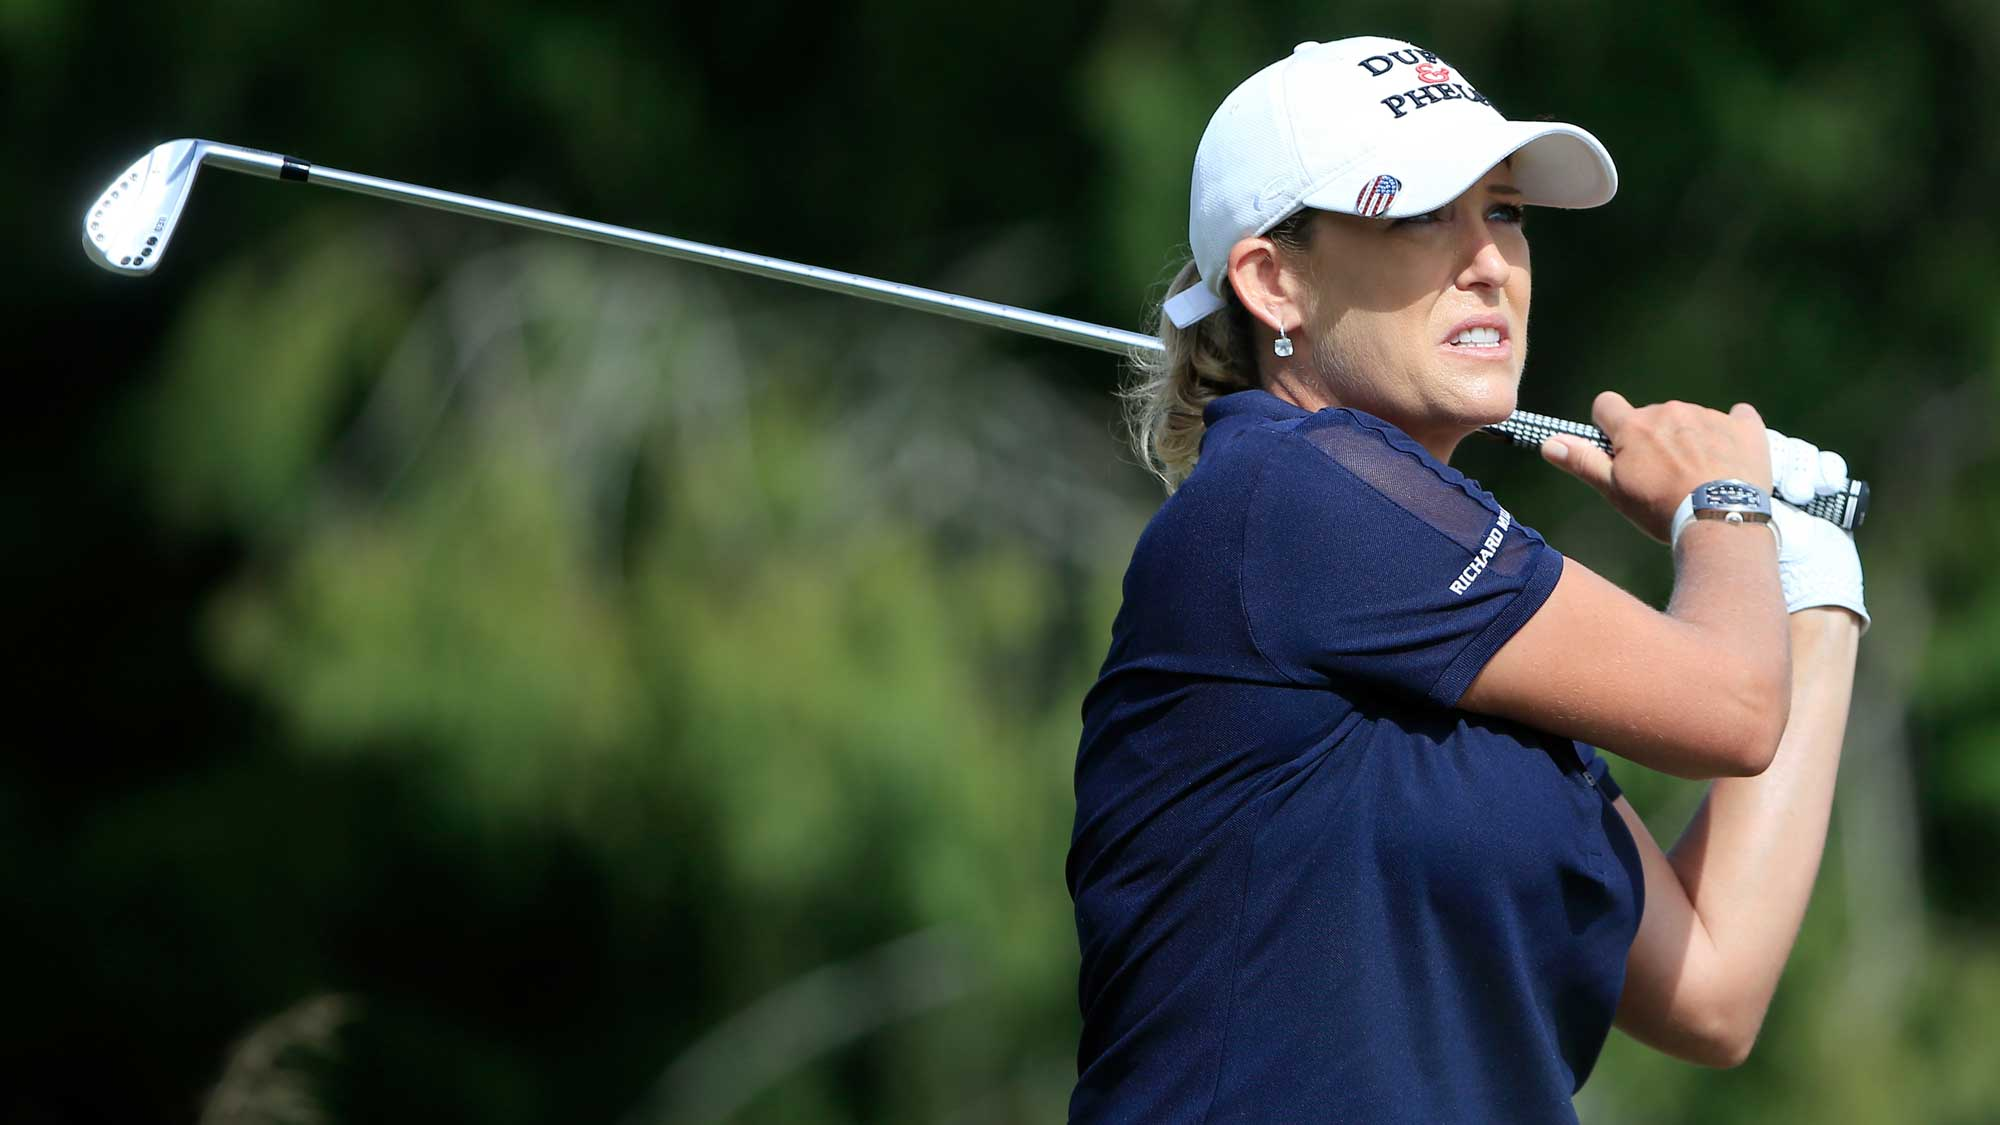 Cristie Kerr of the United States plays a shot on the fifth tee during the final round of the CME Group Tour Championship at Tiburon Golf Club